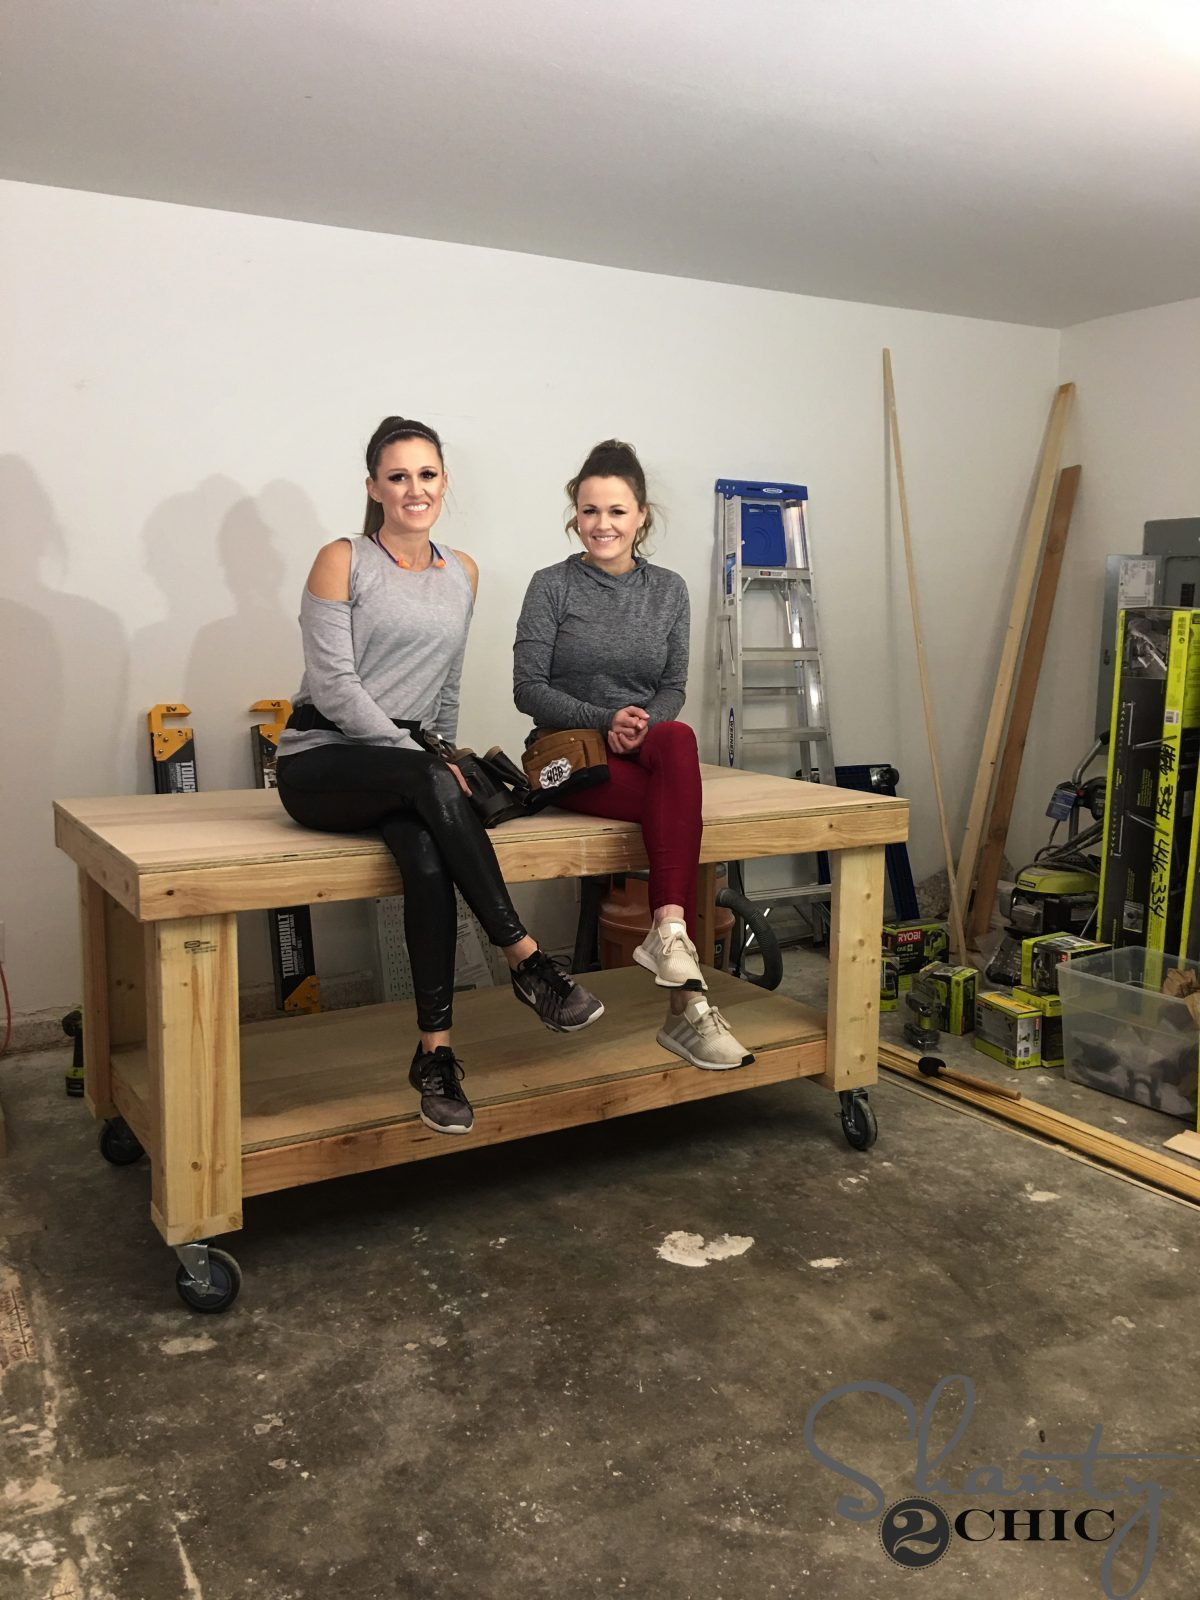 Best ideas about Work Bench DIY . Save or Pin DIY Workbench Shanty 2 Chic Now.